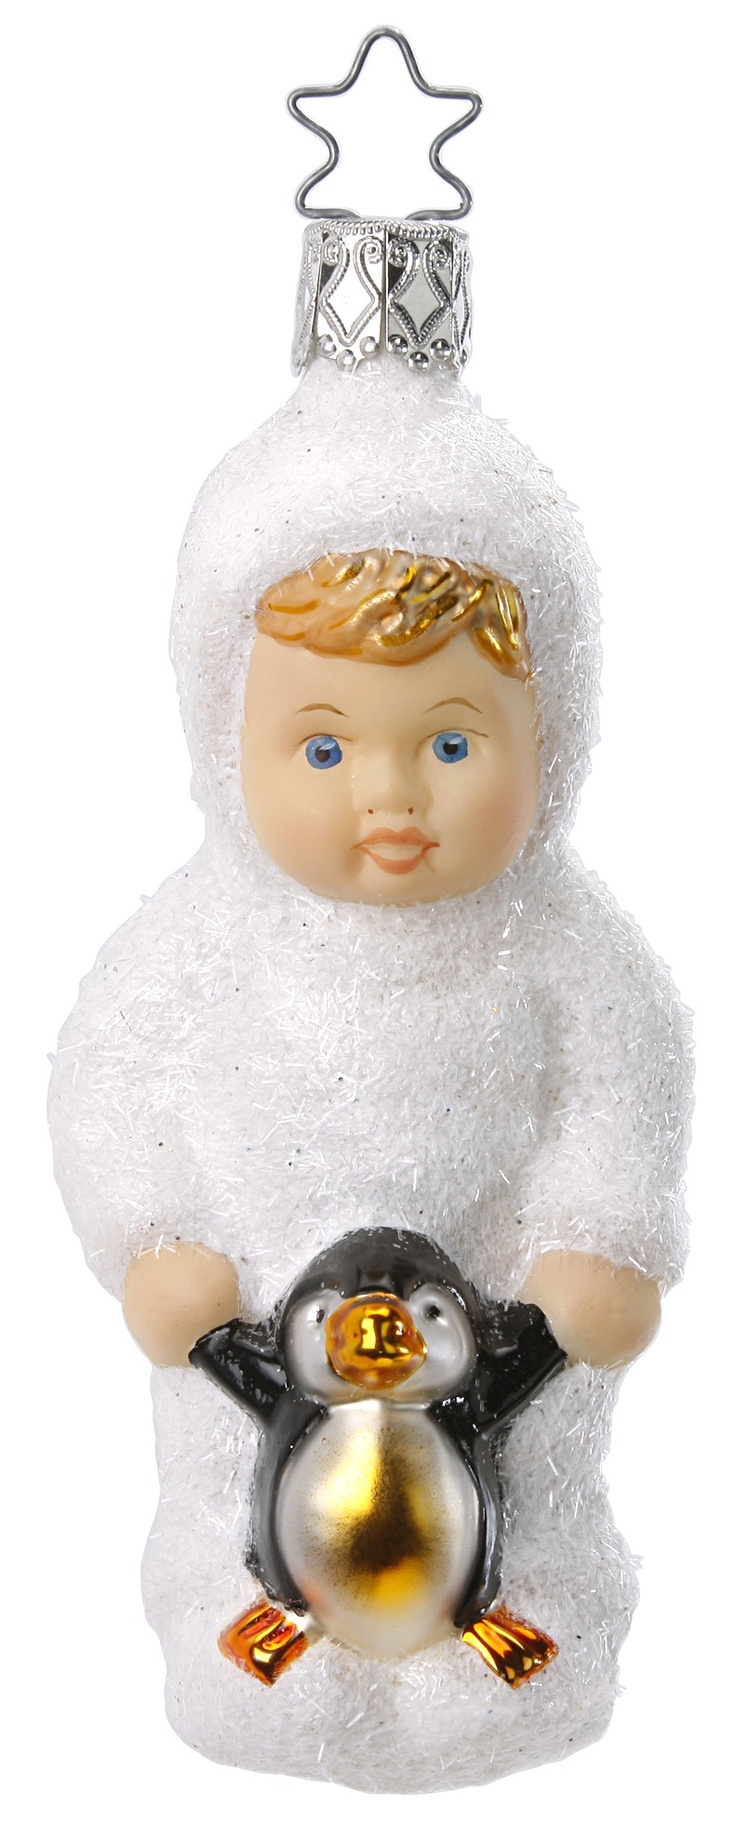 Snowbaby ornaments - Snow Baby New For 2012 Life Touch Ornament 4